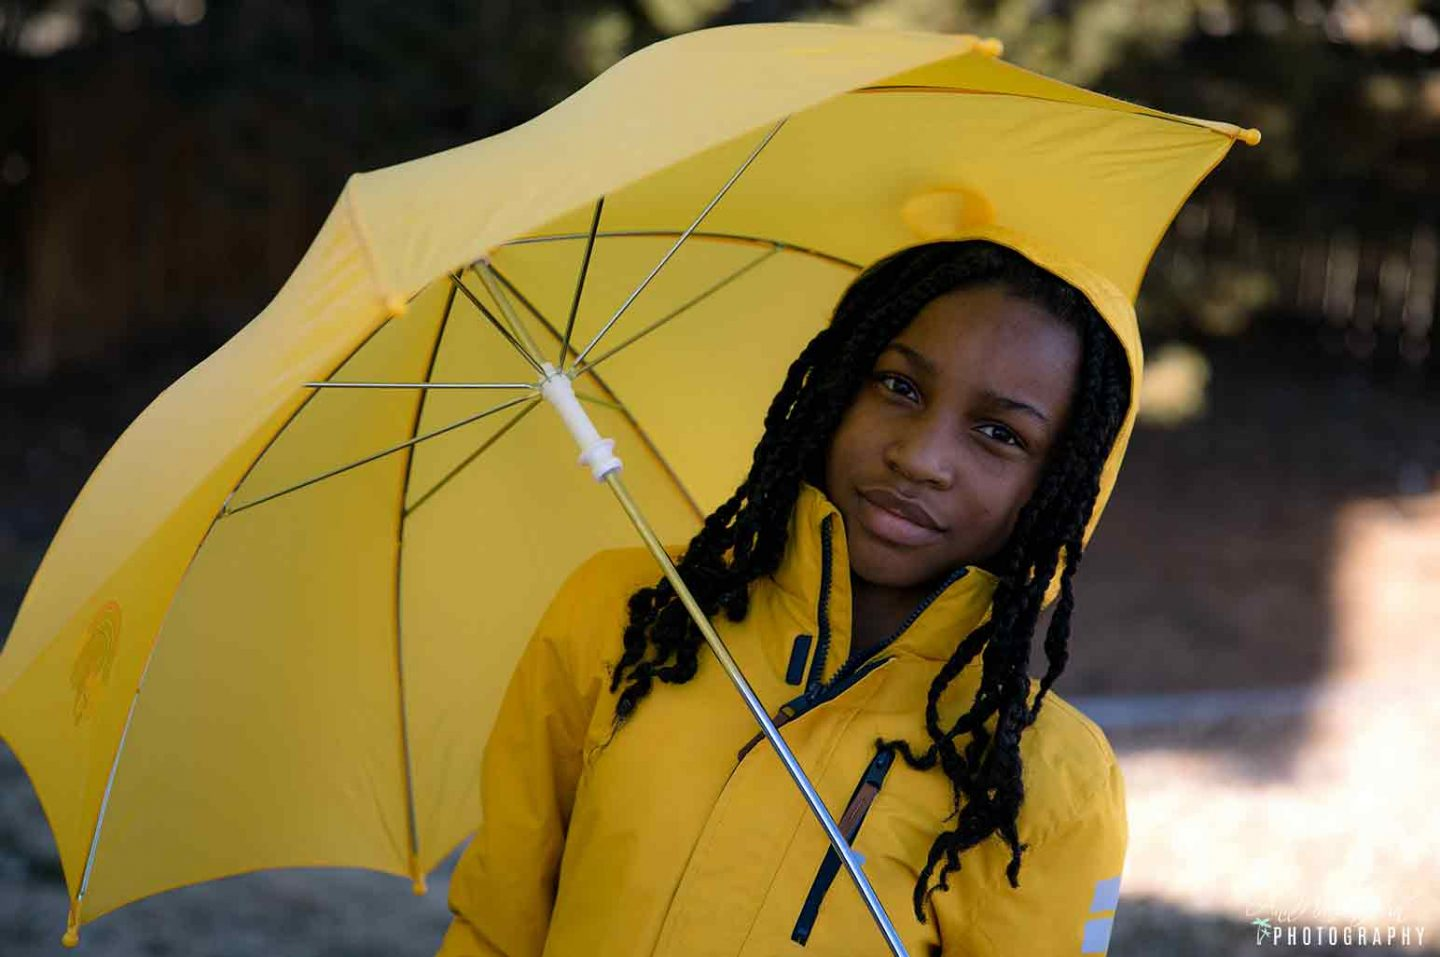 Ways to Keep Kids Busy During Rainy Days